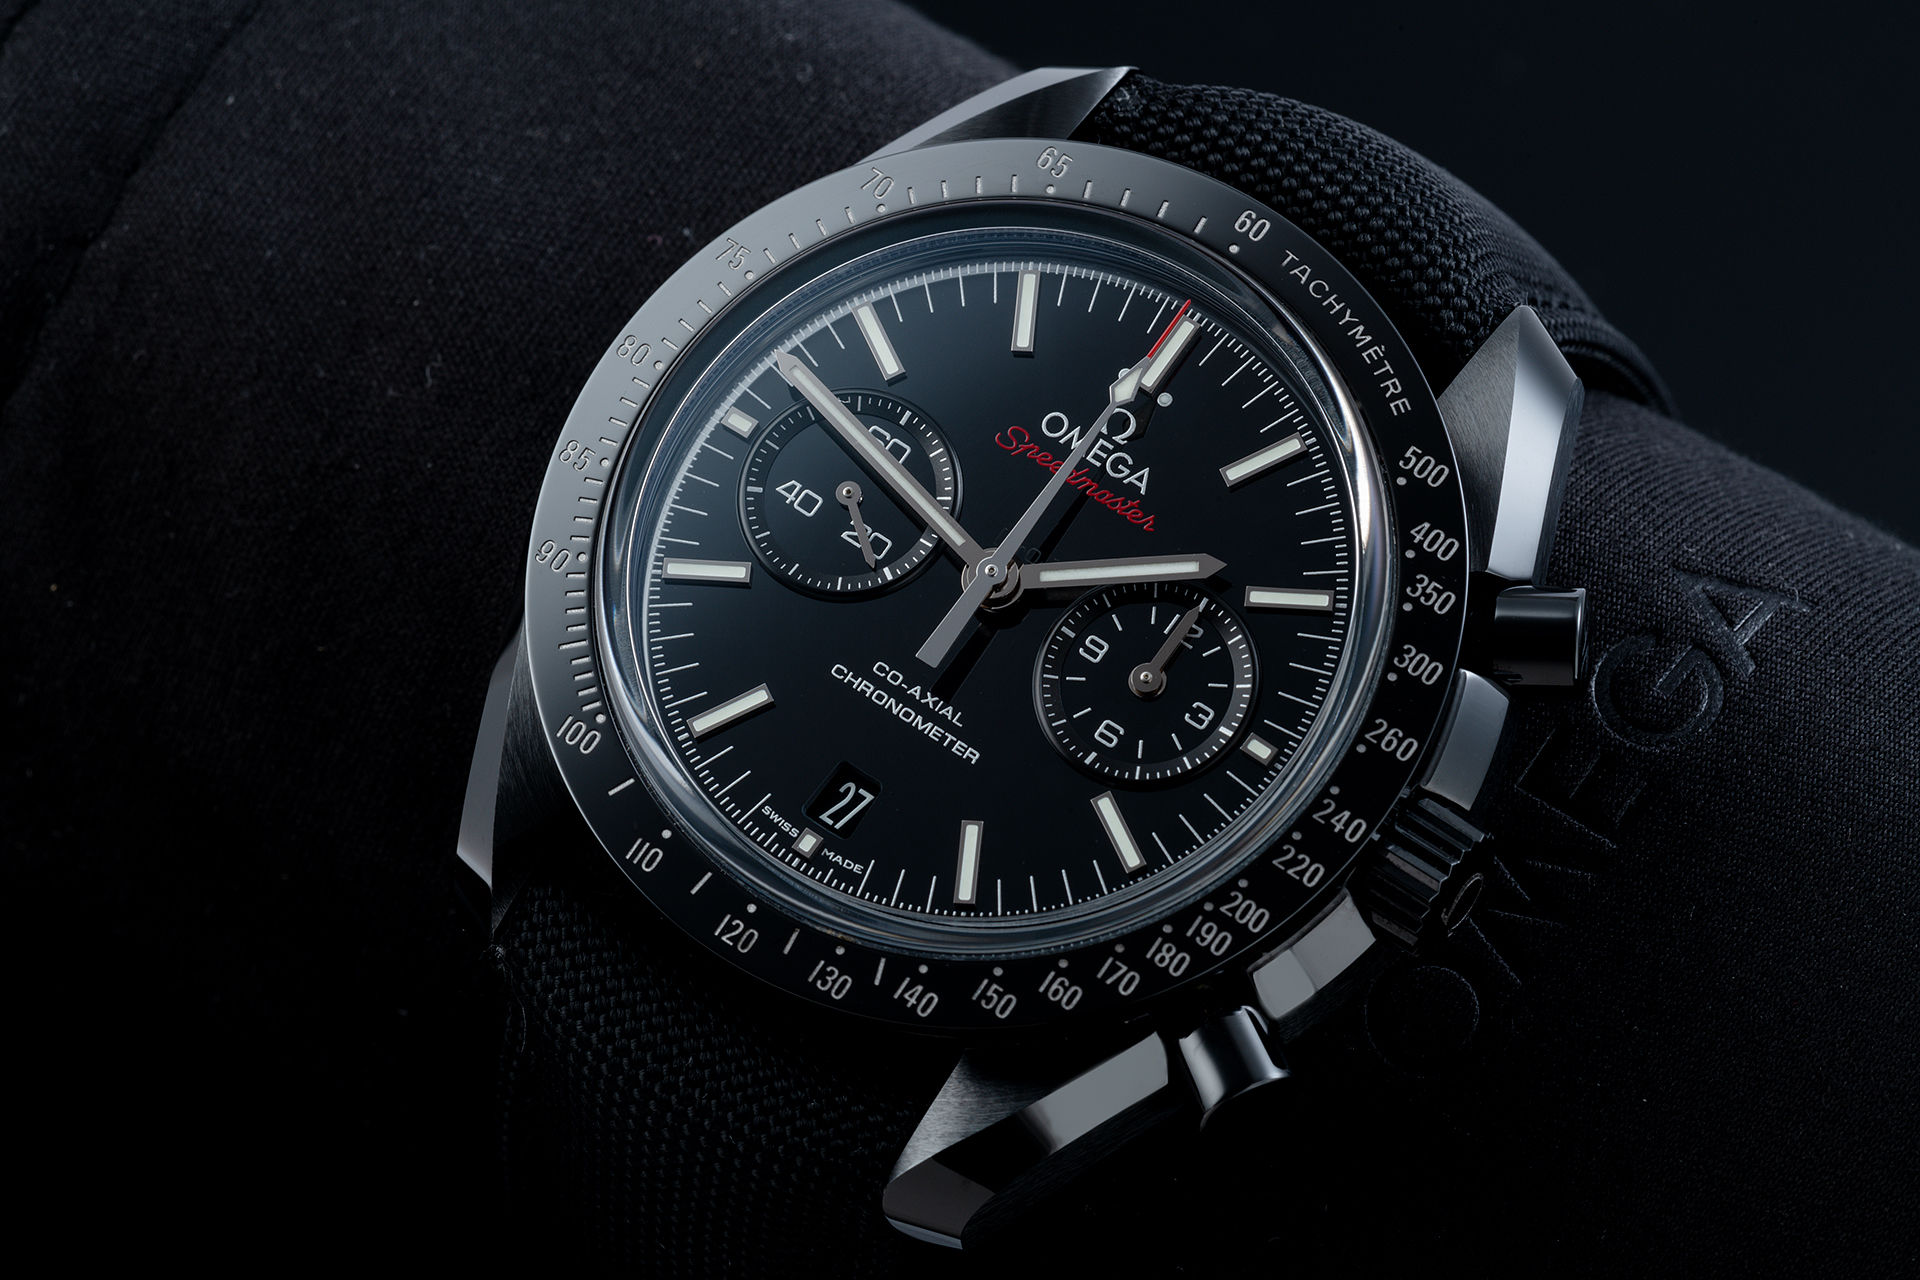 ref 31192445101007 | Perfect 'Complete Set' | Omega Speedmaster